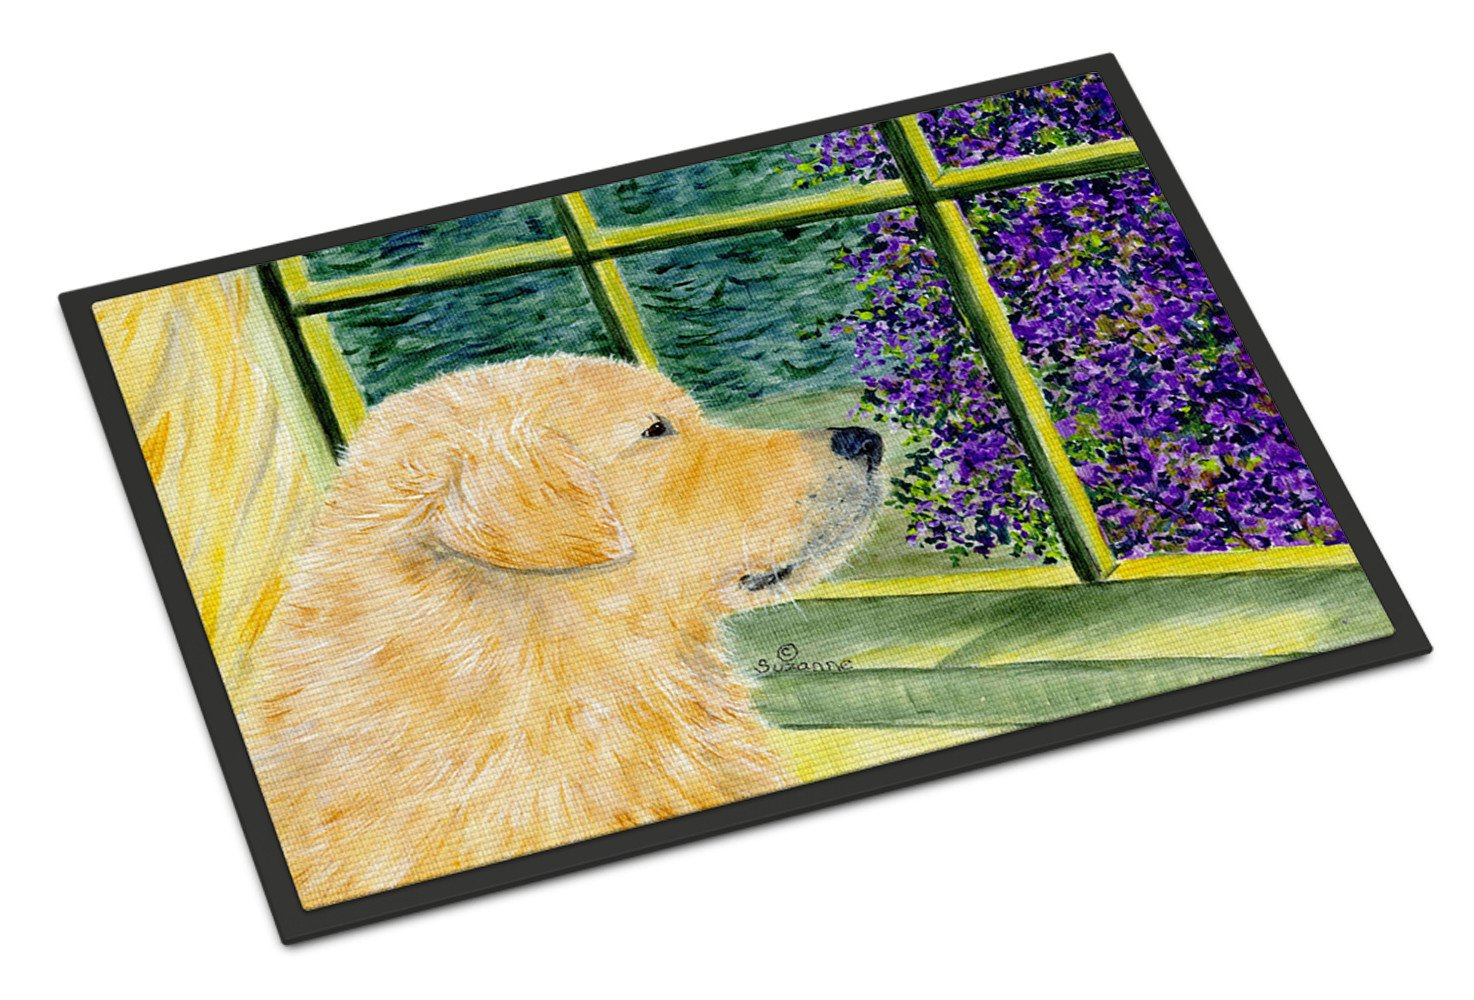 Golden Retriever Indoor Outdoor Mat 18x27 Doormat by Caroline's Treasures